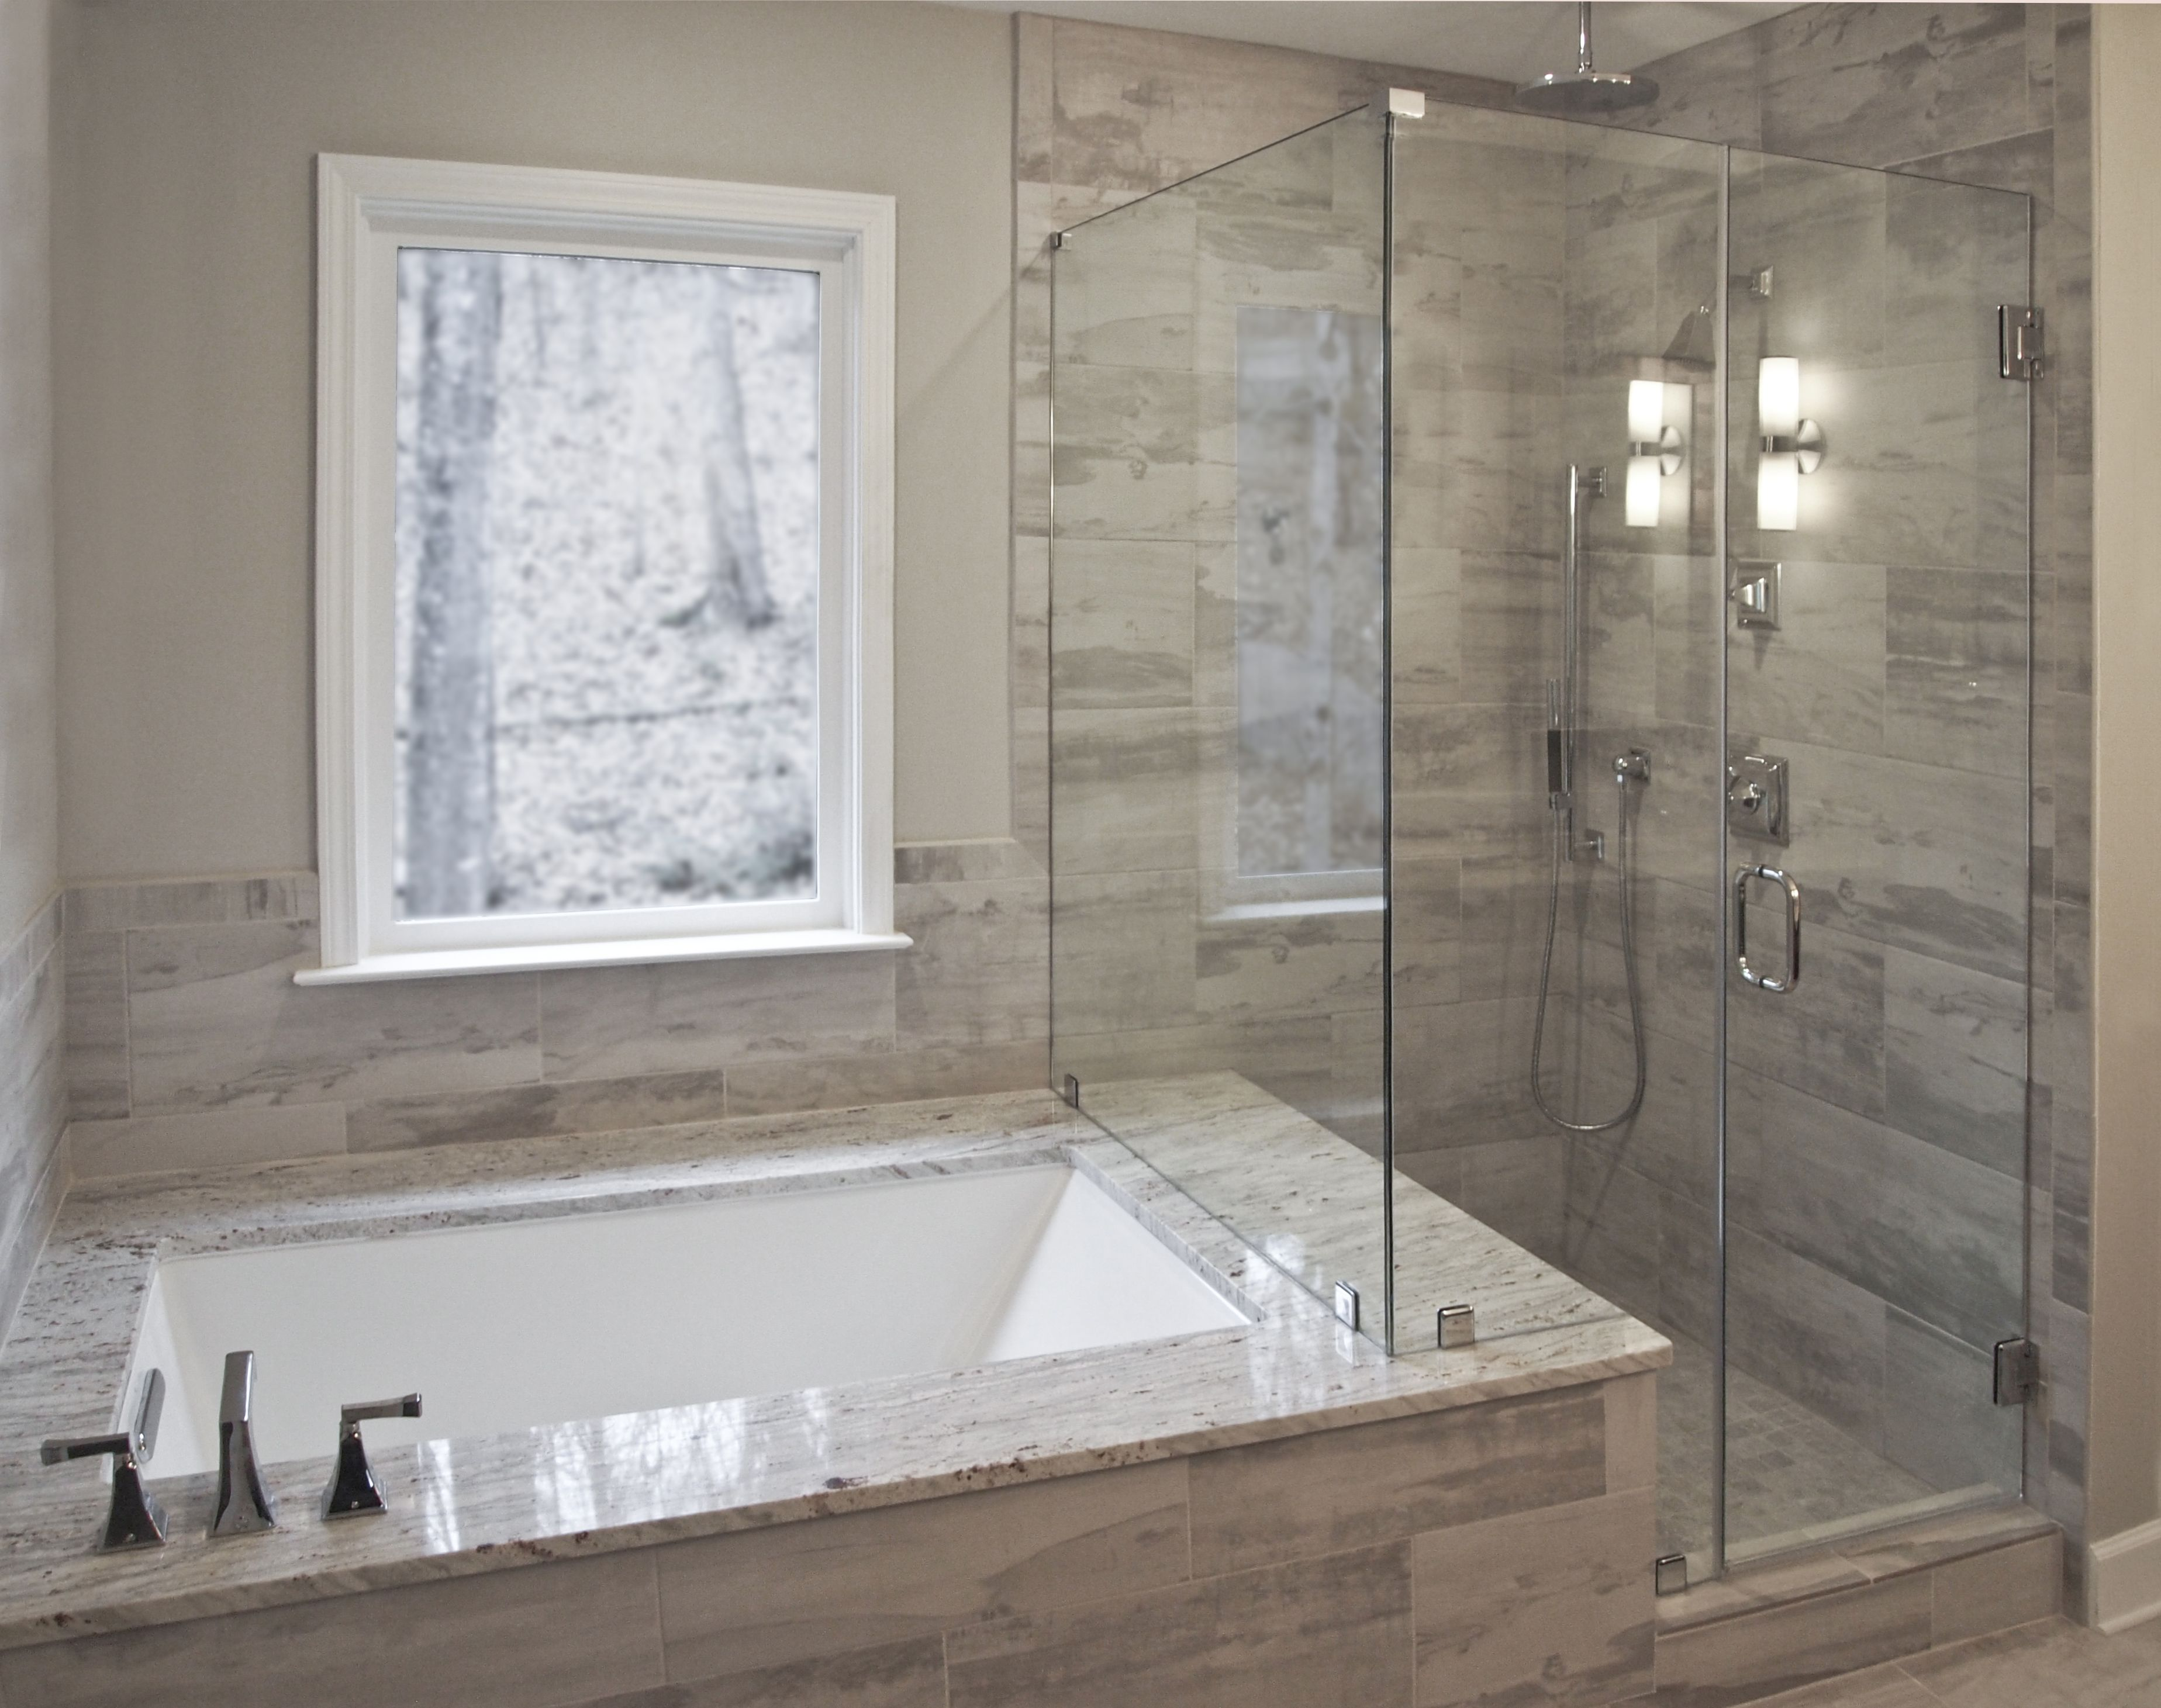 Bathroom remodel by Craftworks Contruction. Glass enclosed